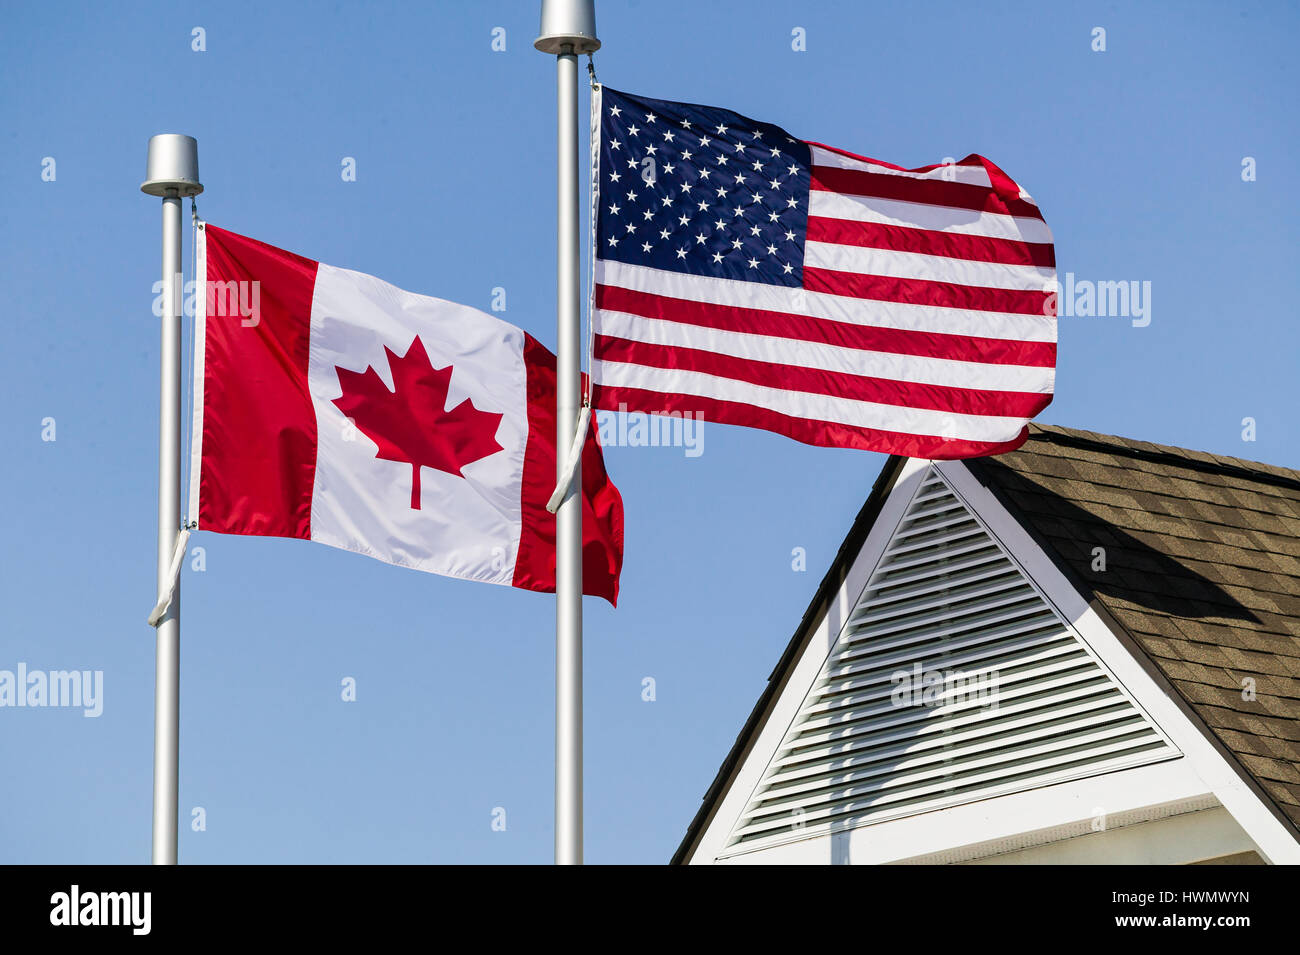 150546353ad Stock Photo. Enlarge. An American flag and a Canadian flag flying side by  side.